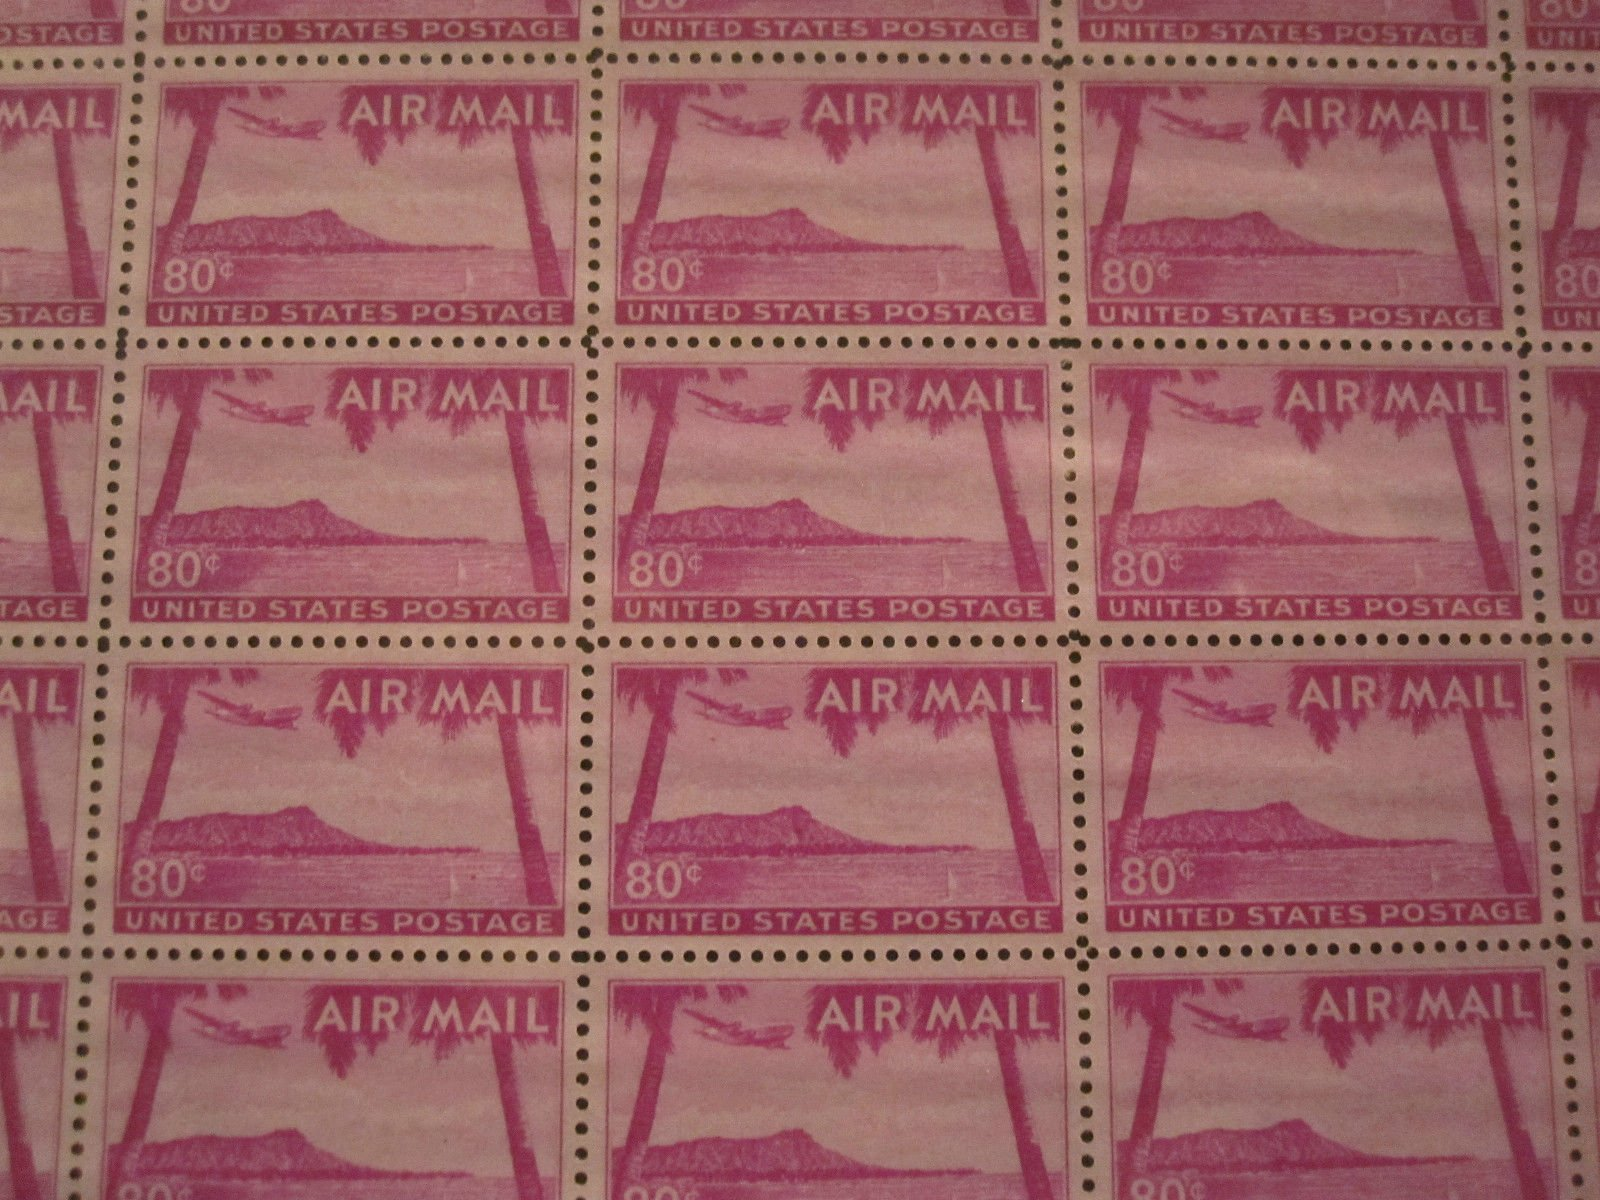 Hawaii Sheet of Fifty 80 Cent Airmail Stamps Scott C46